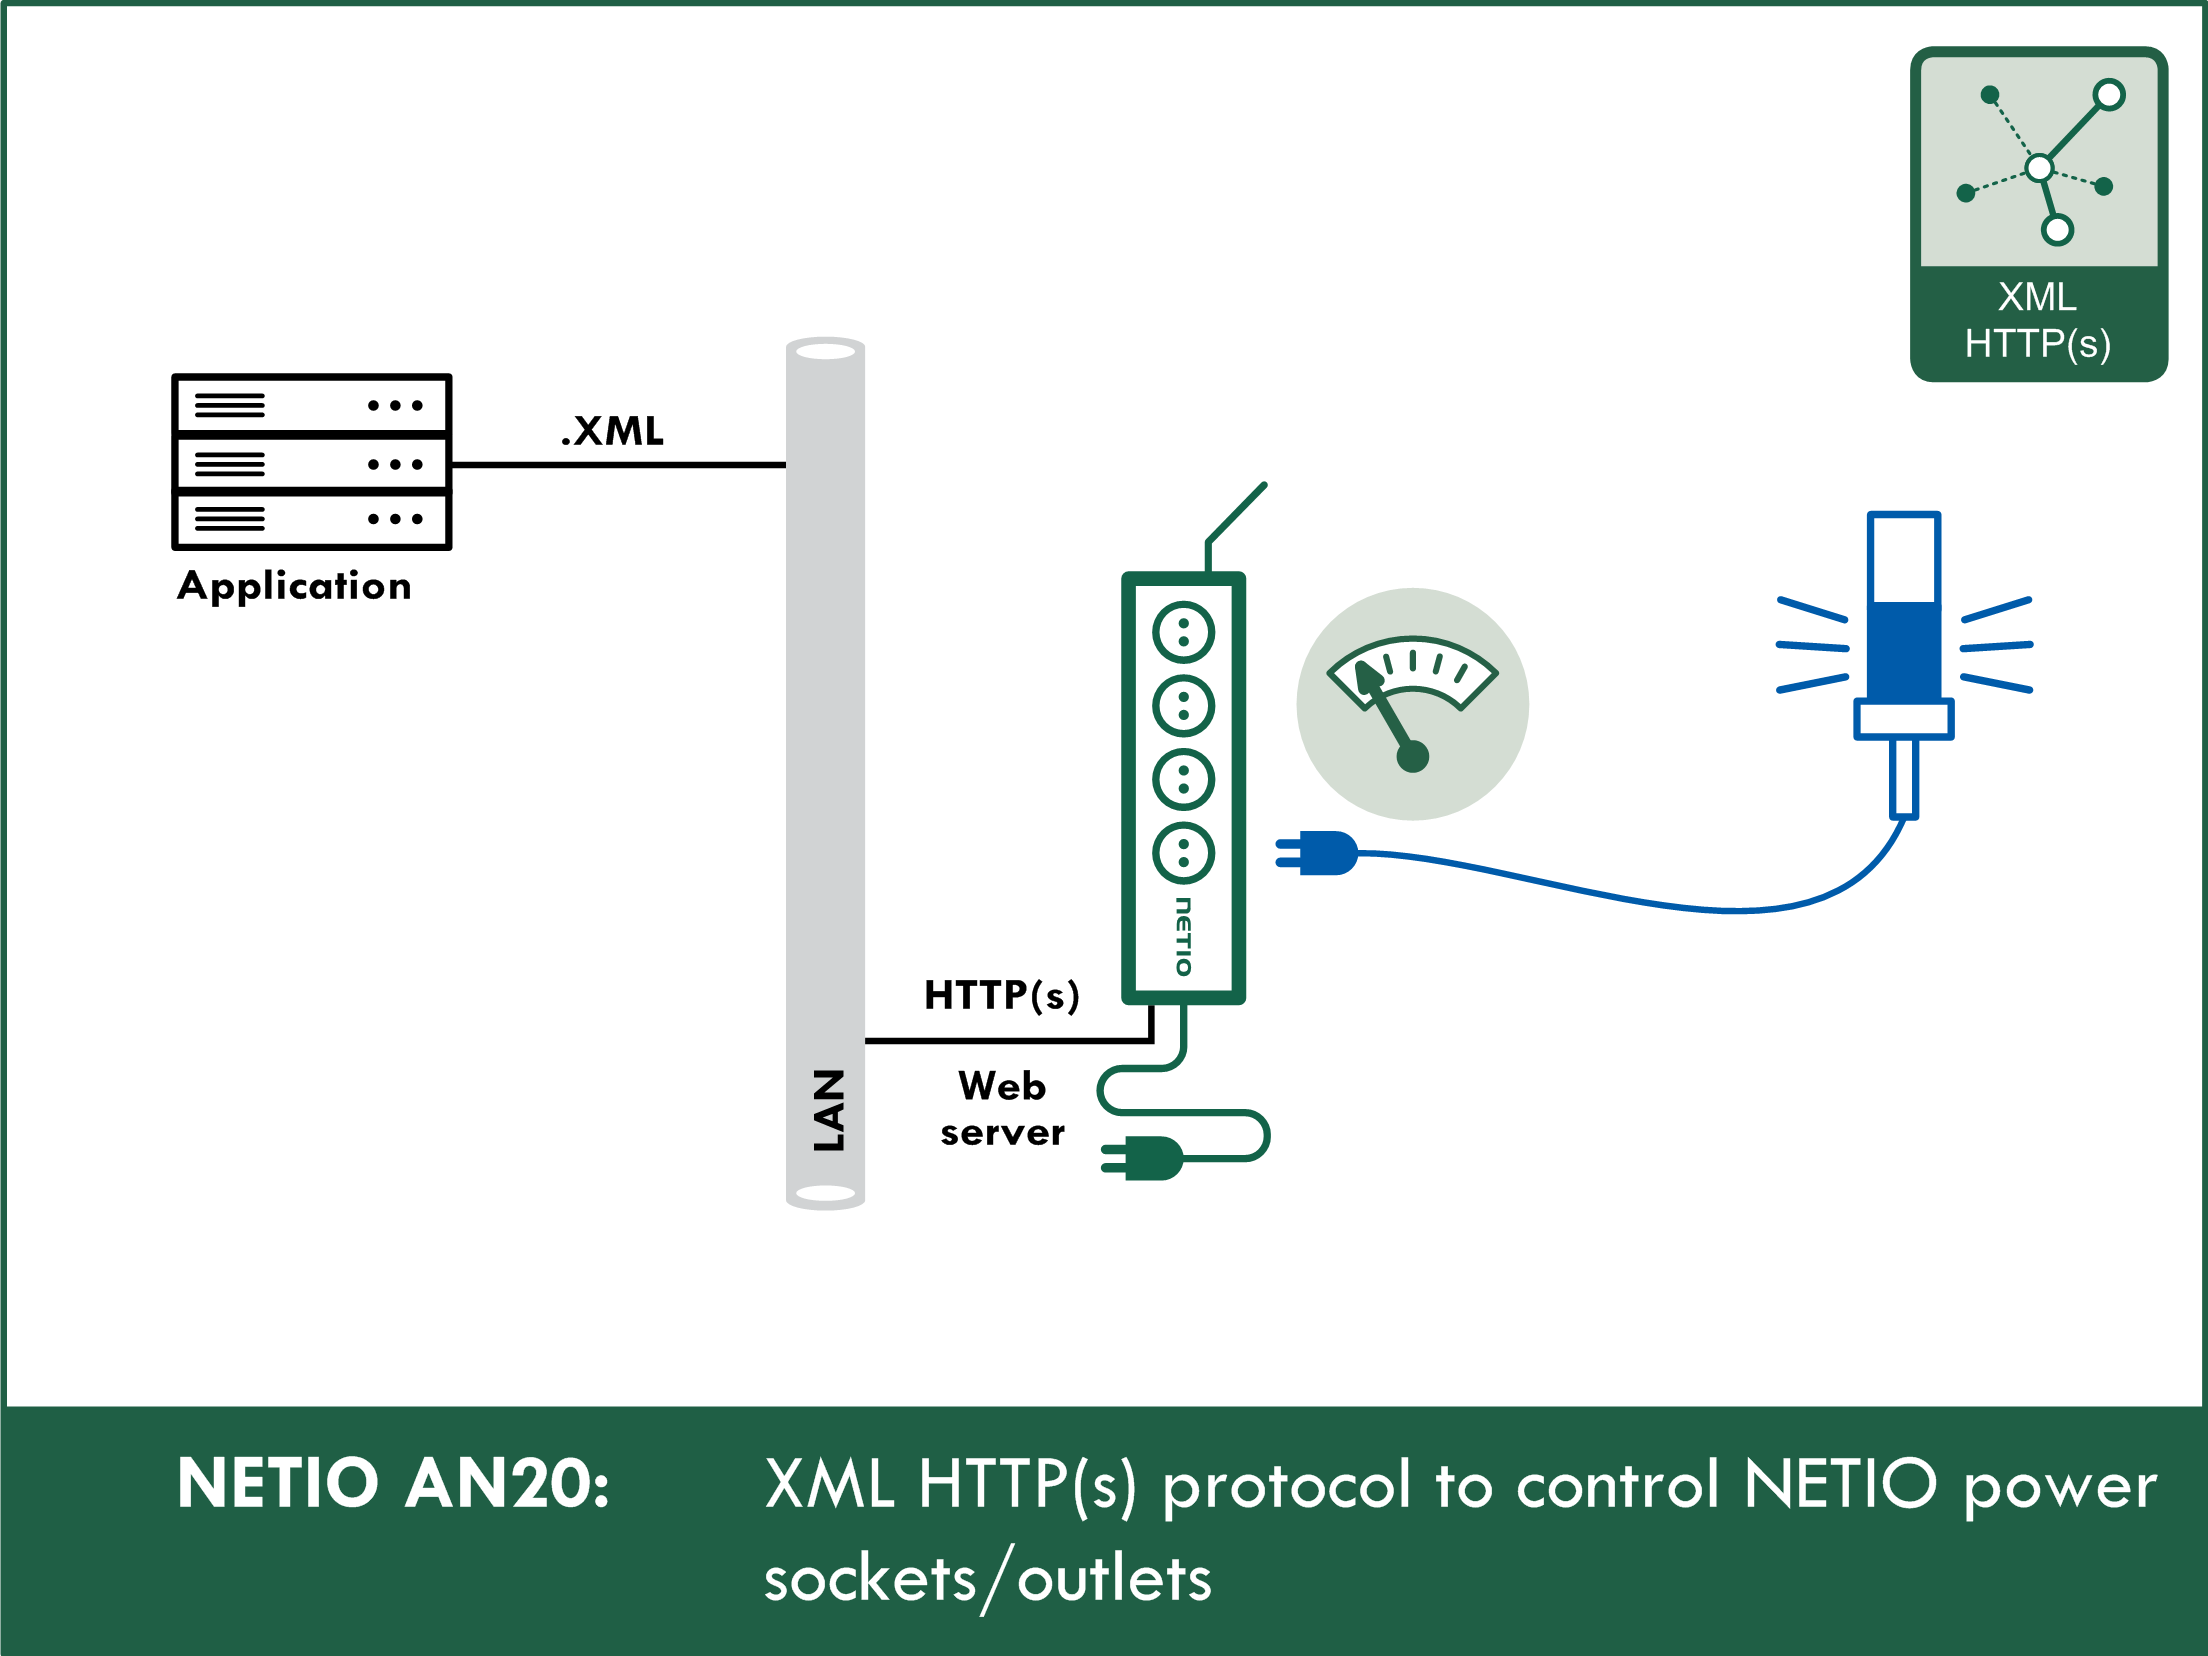 XML HTTPs protocol to control 230V power outlets